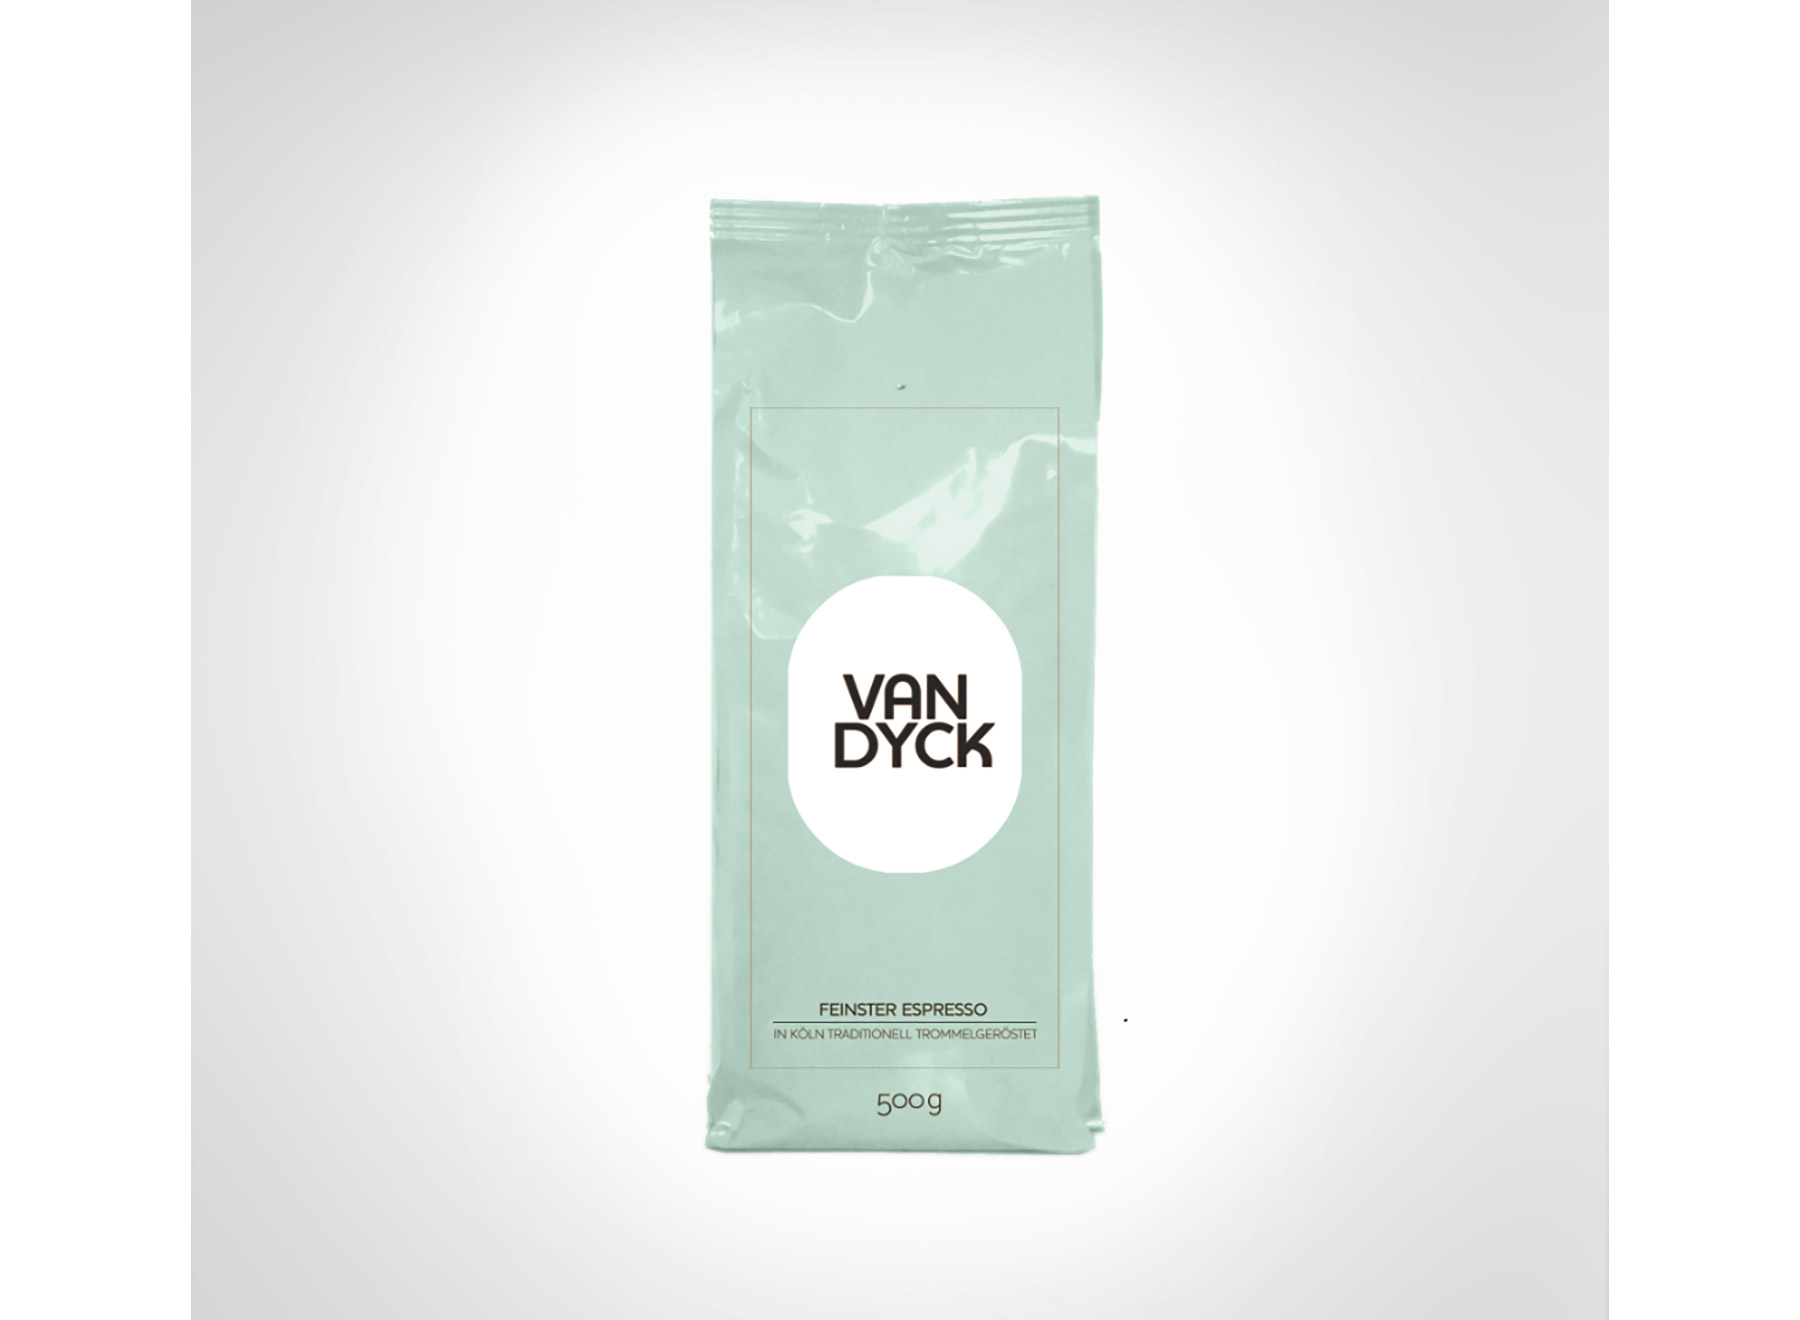 product design by nondesign